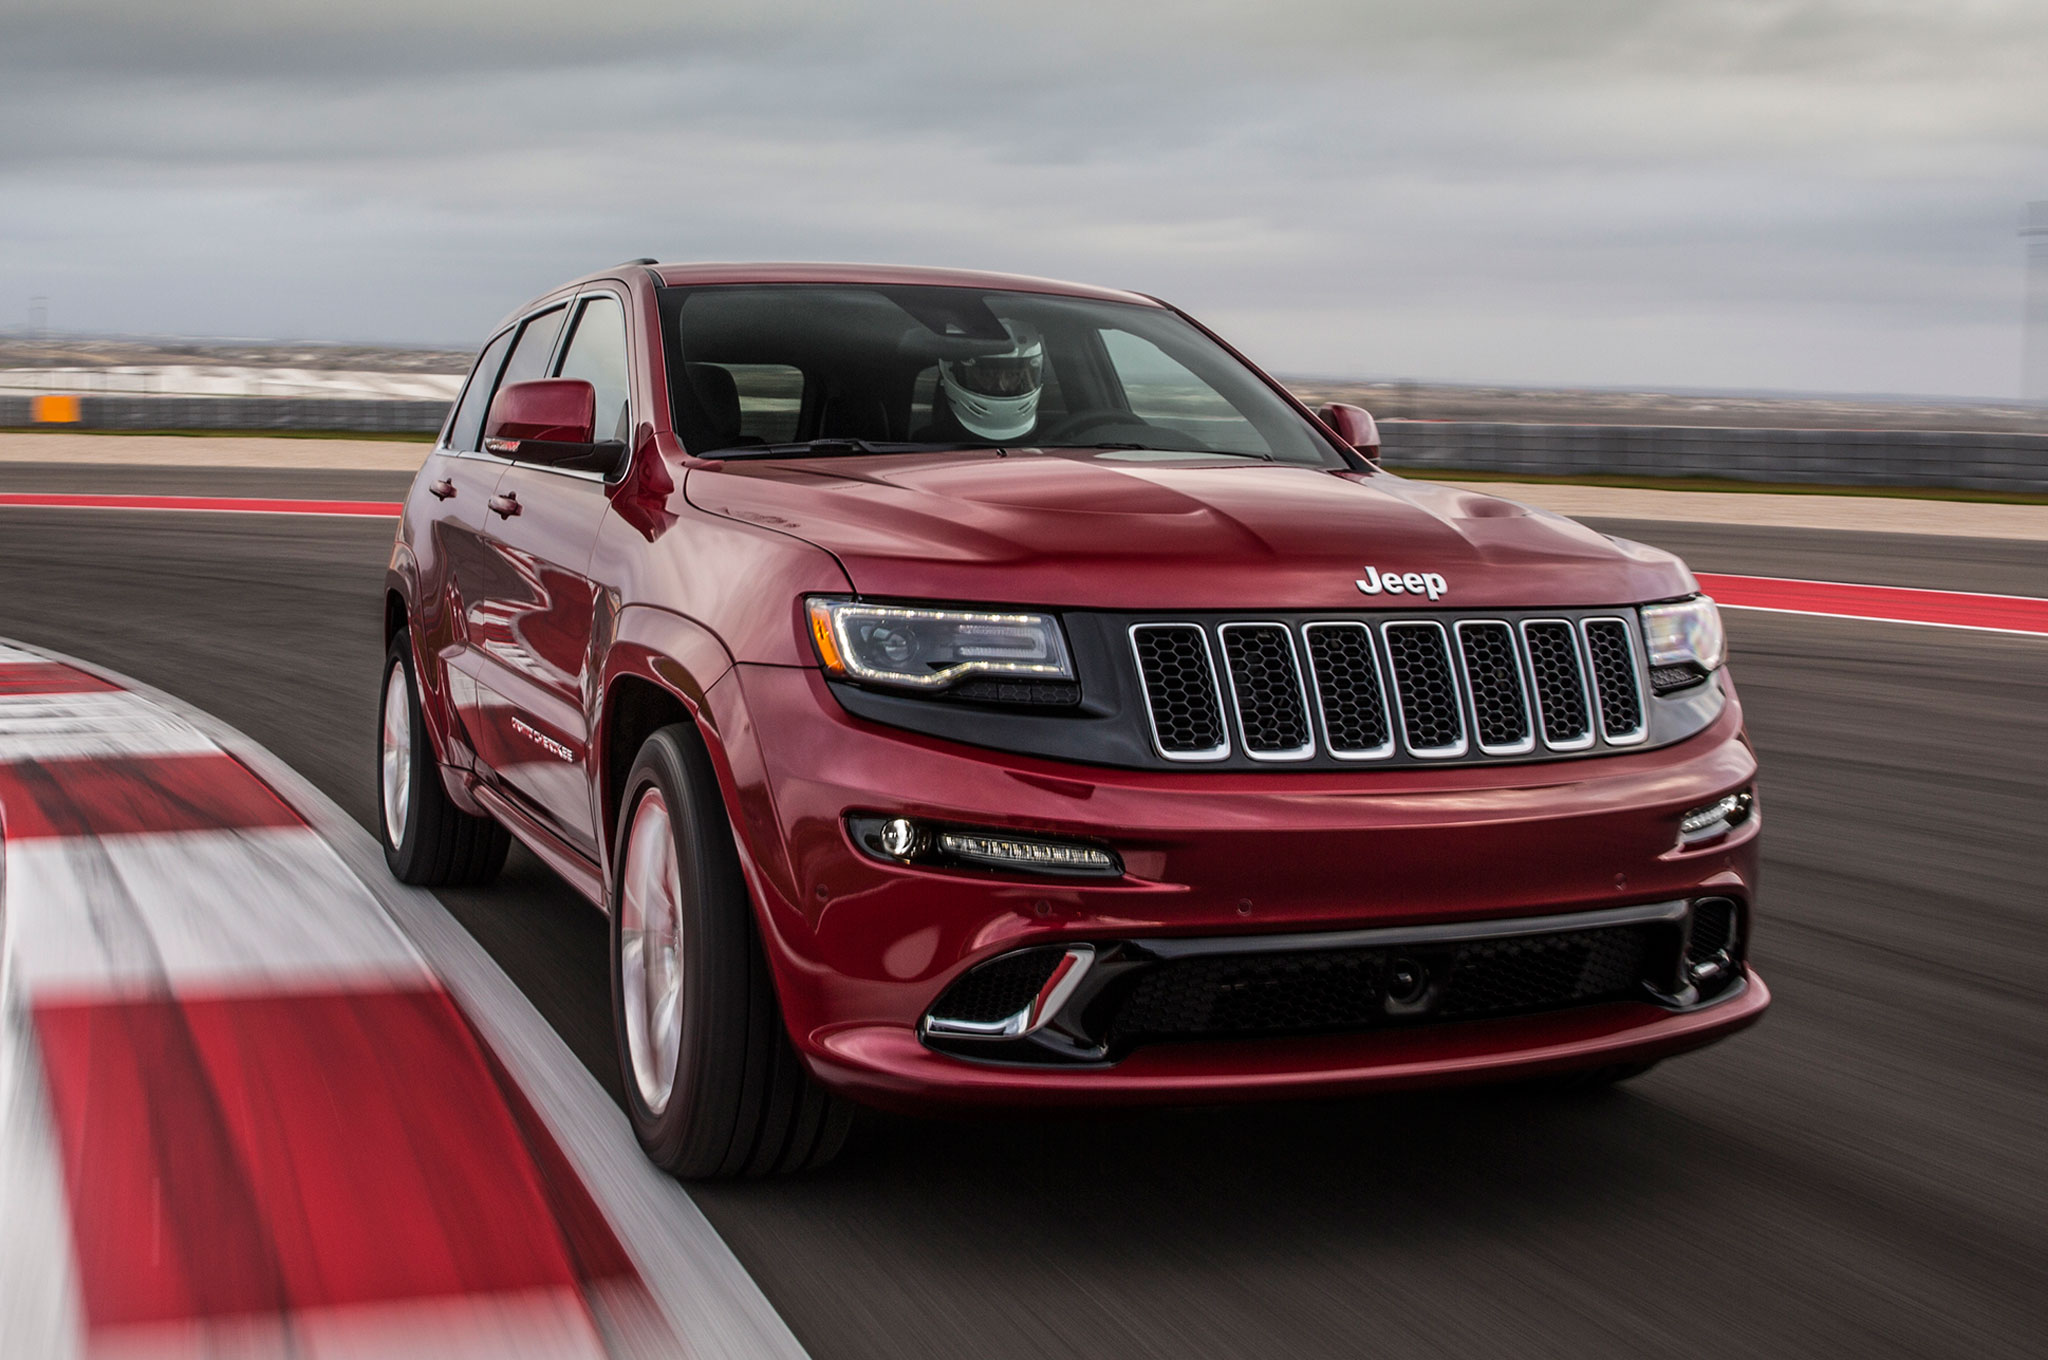 2014-Jeep-Grand-Cherokee-SRT8-front-three-quarter-motion-track